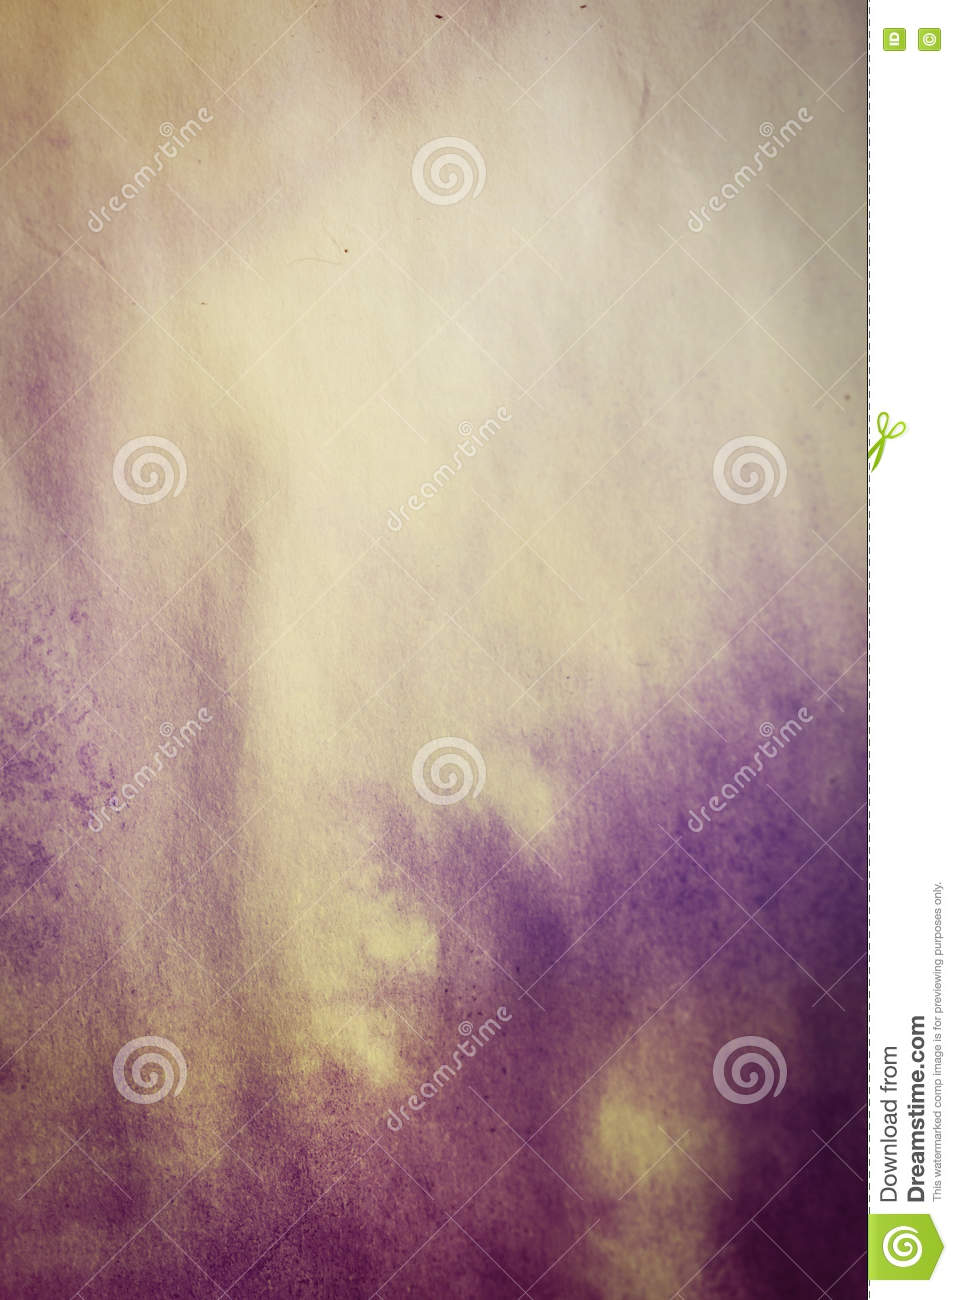 Purple Spreads Ink On White Wrinkled Paper With A Yellow Tinge.